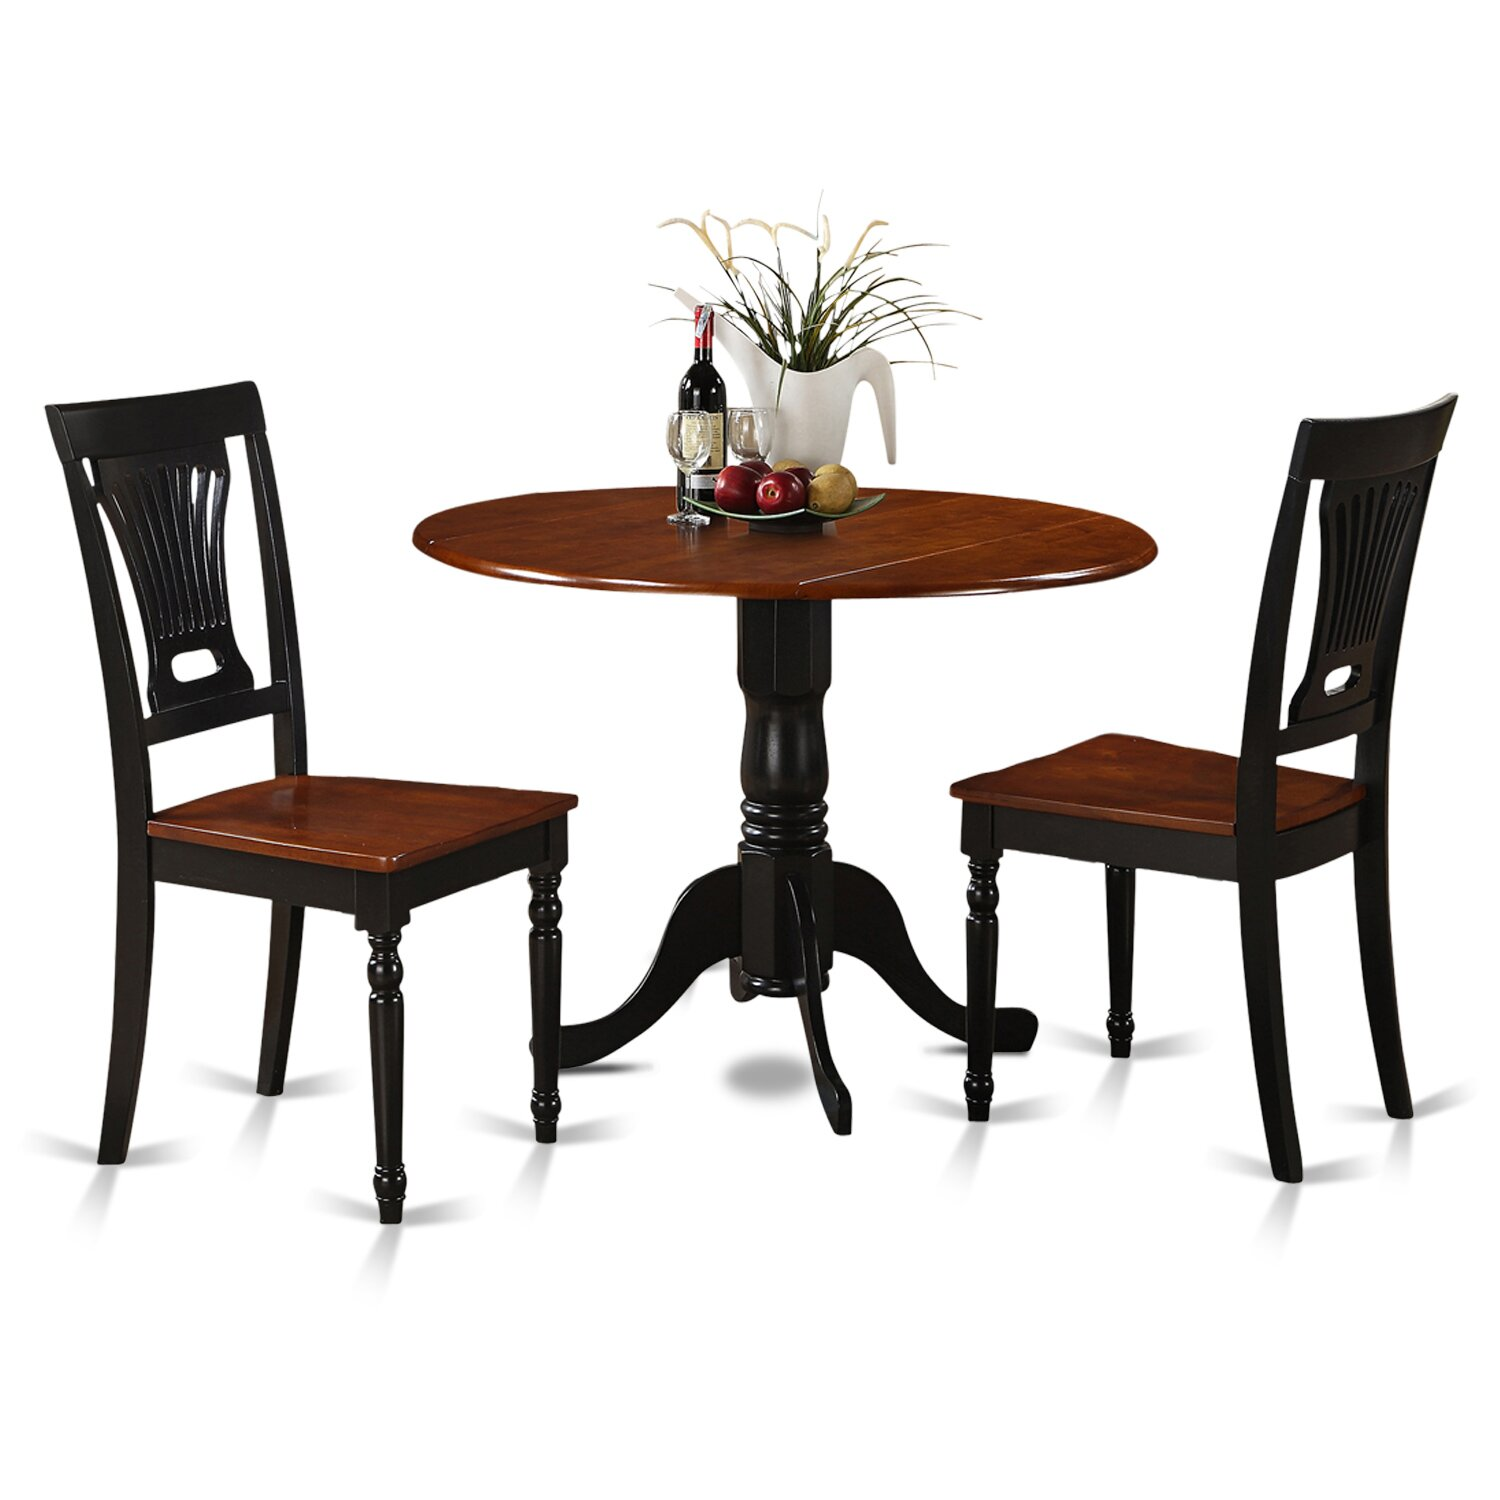 Wooden Importers Dublin 3 Piece Dining Set u0026 Reviews : Wayfair